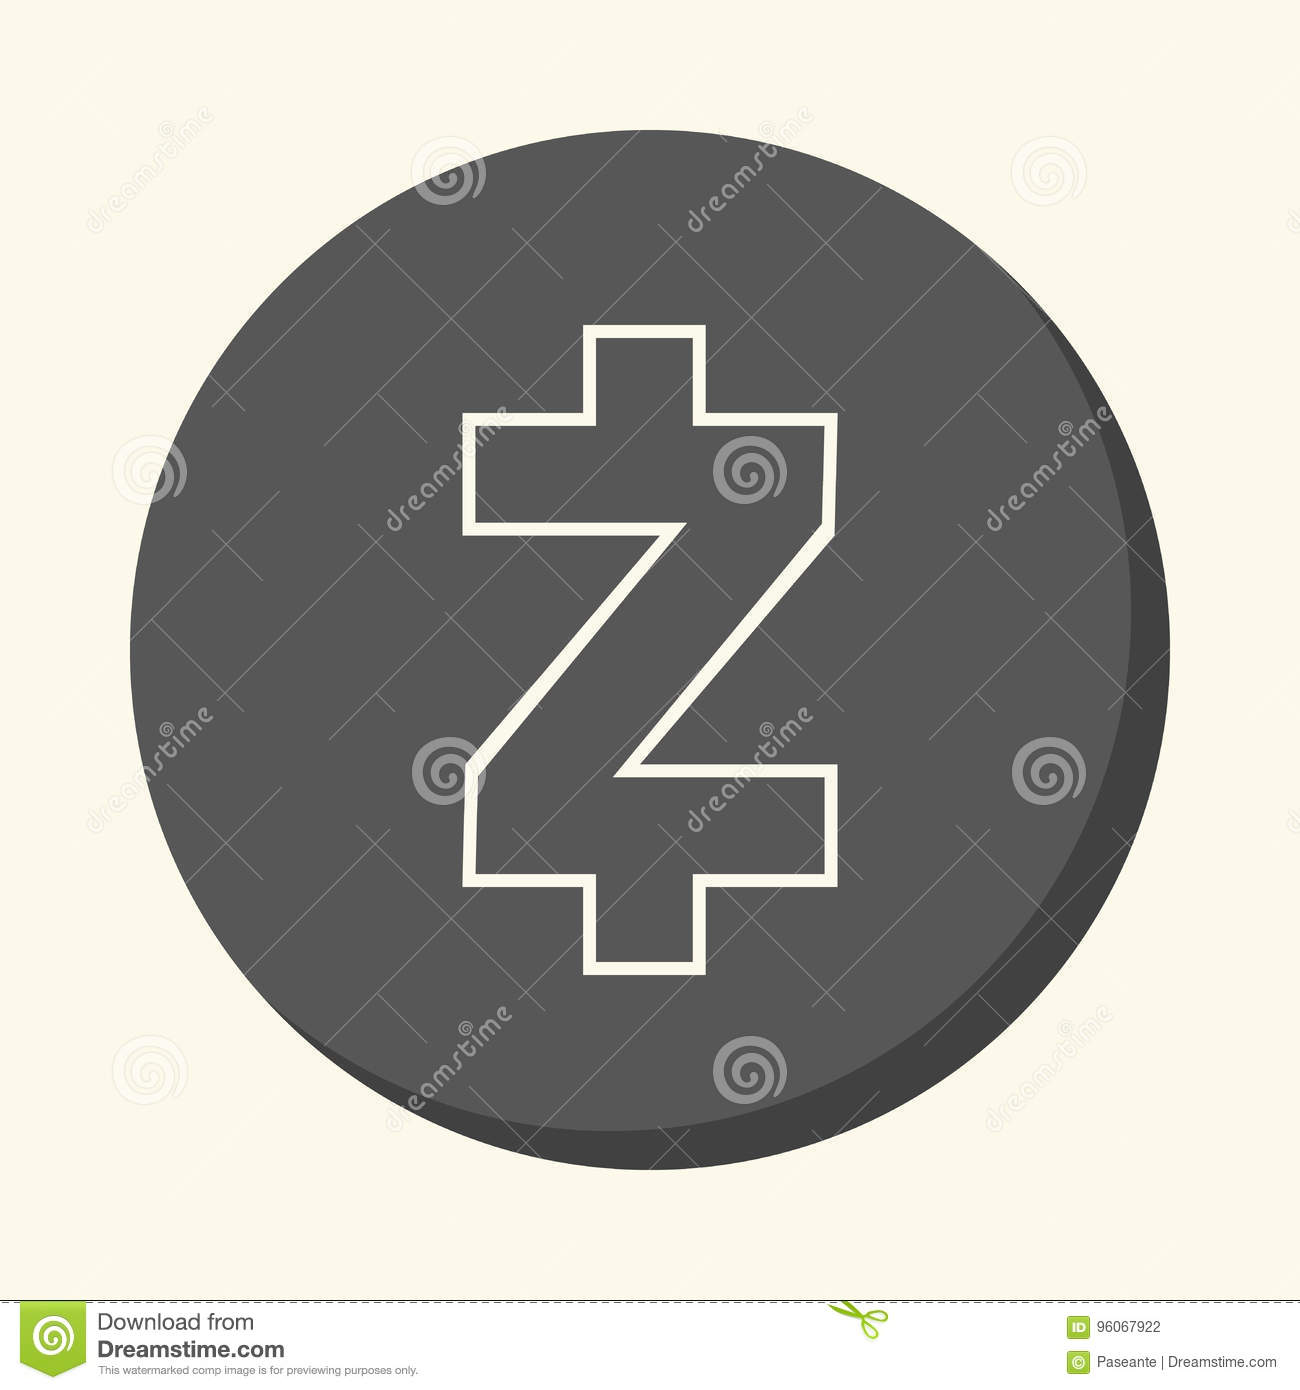 Download Symbol Of Digital Crypto Currency Zcash Round Linear Icon With Illusion Volume